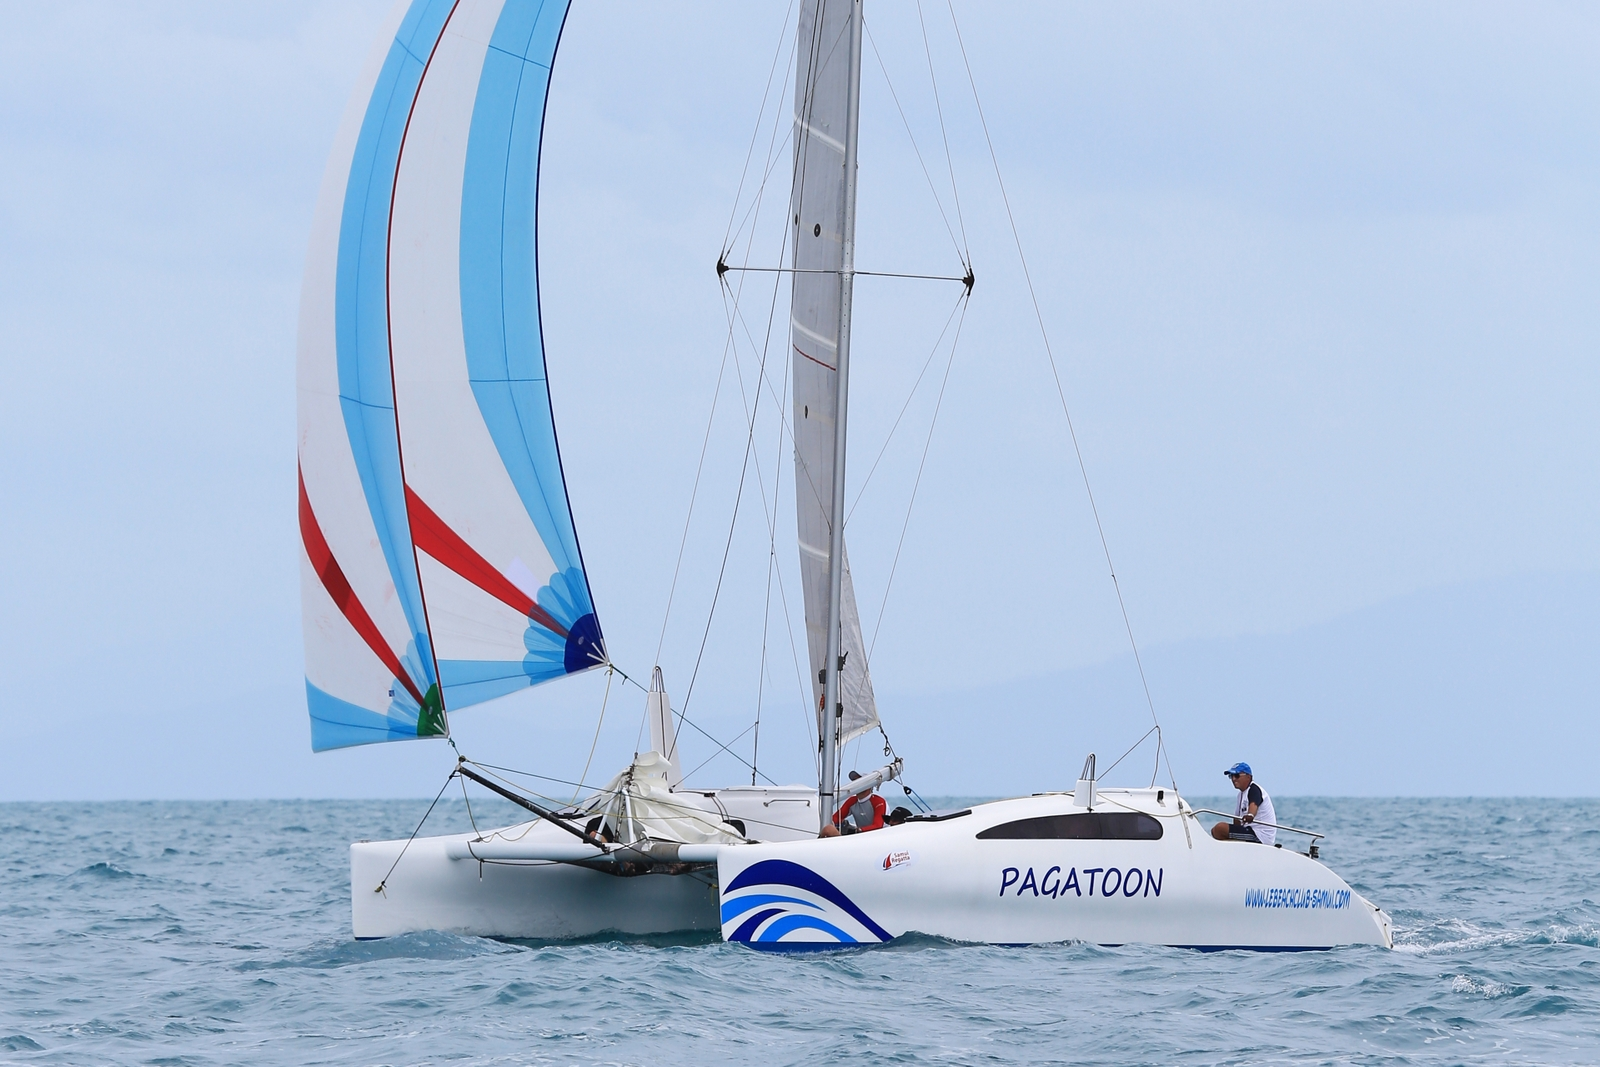 Le Beach Club – the perfect place to learn to sail | Samui Times